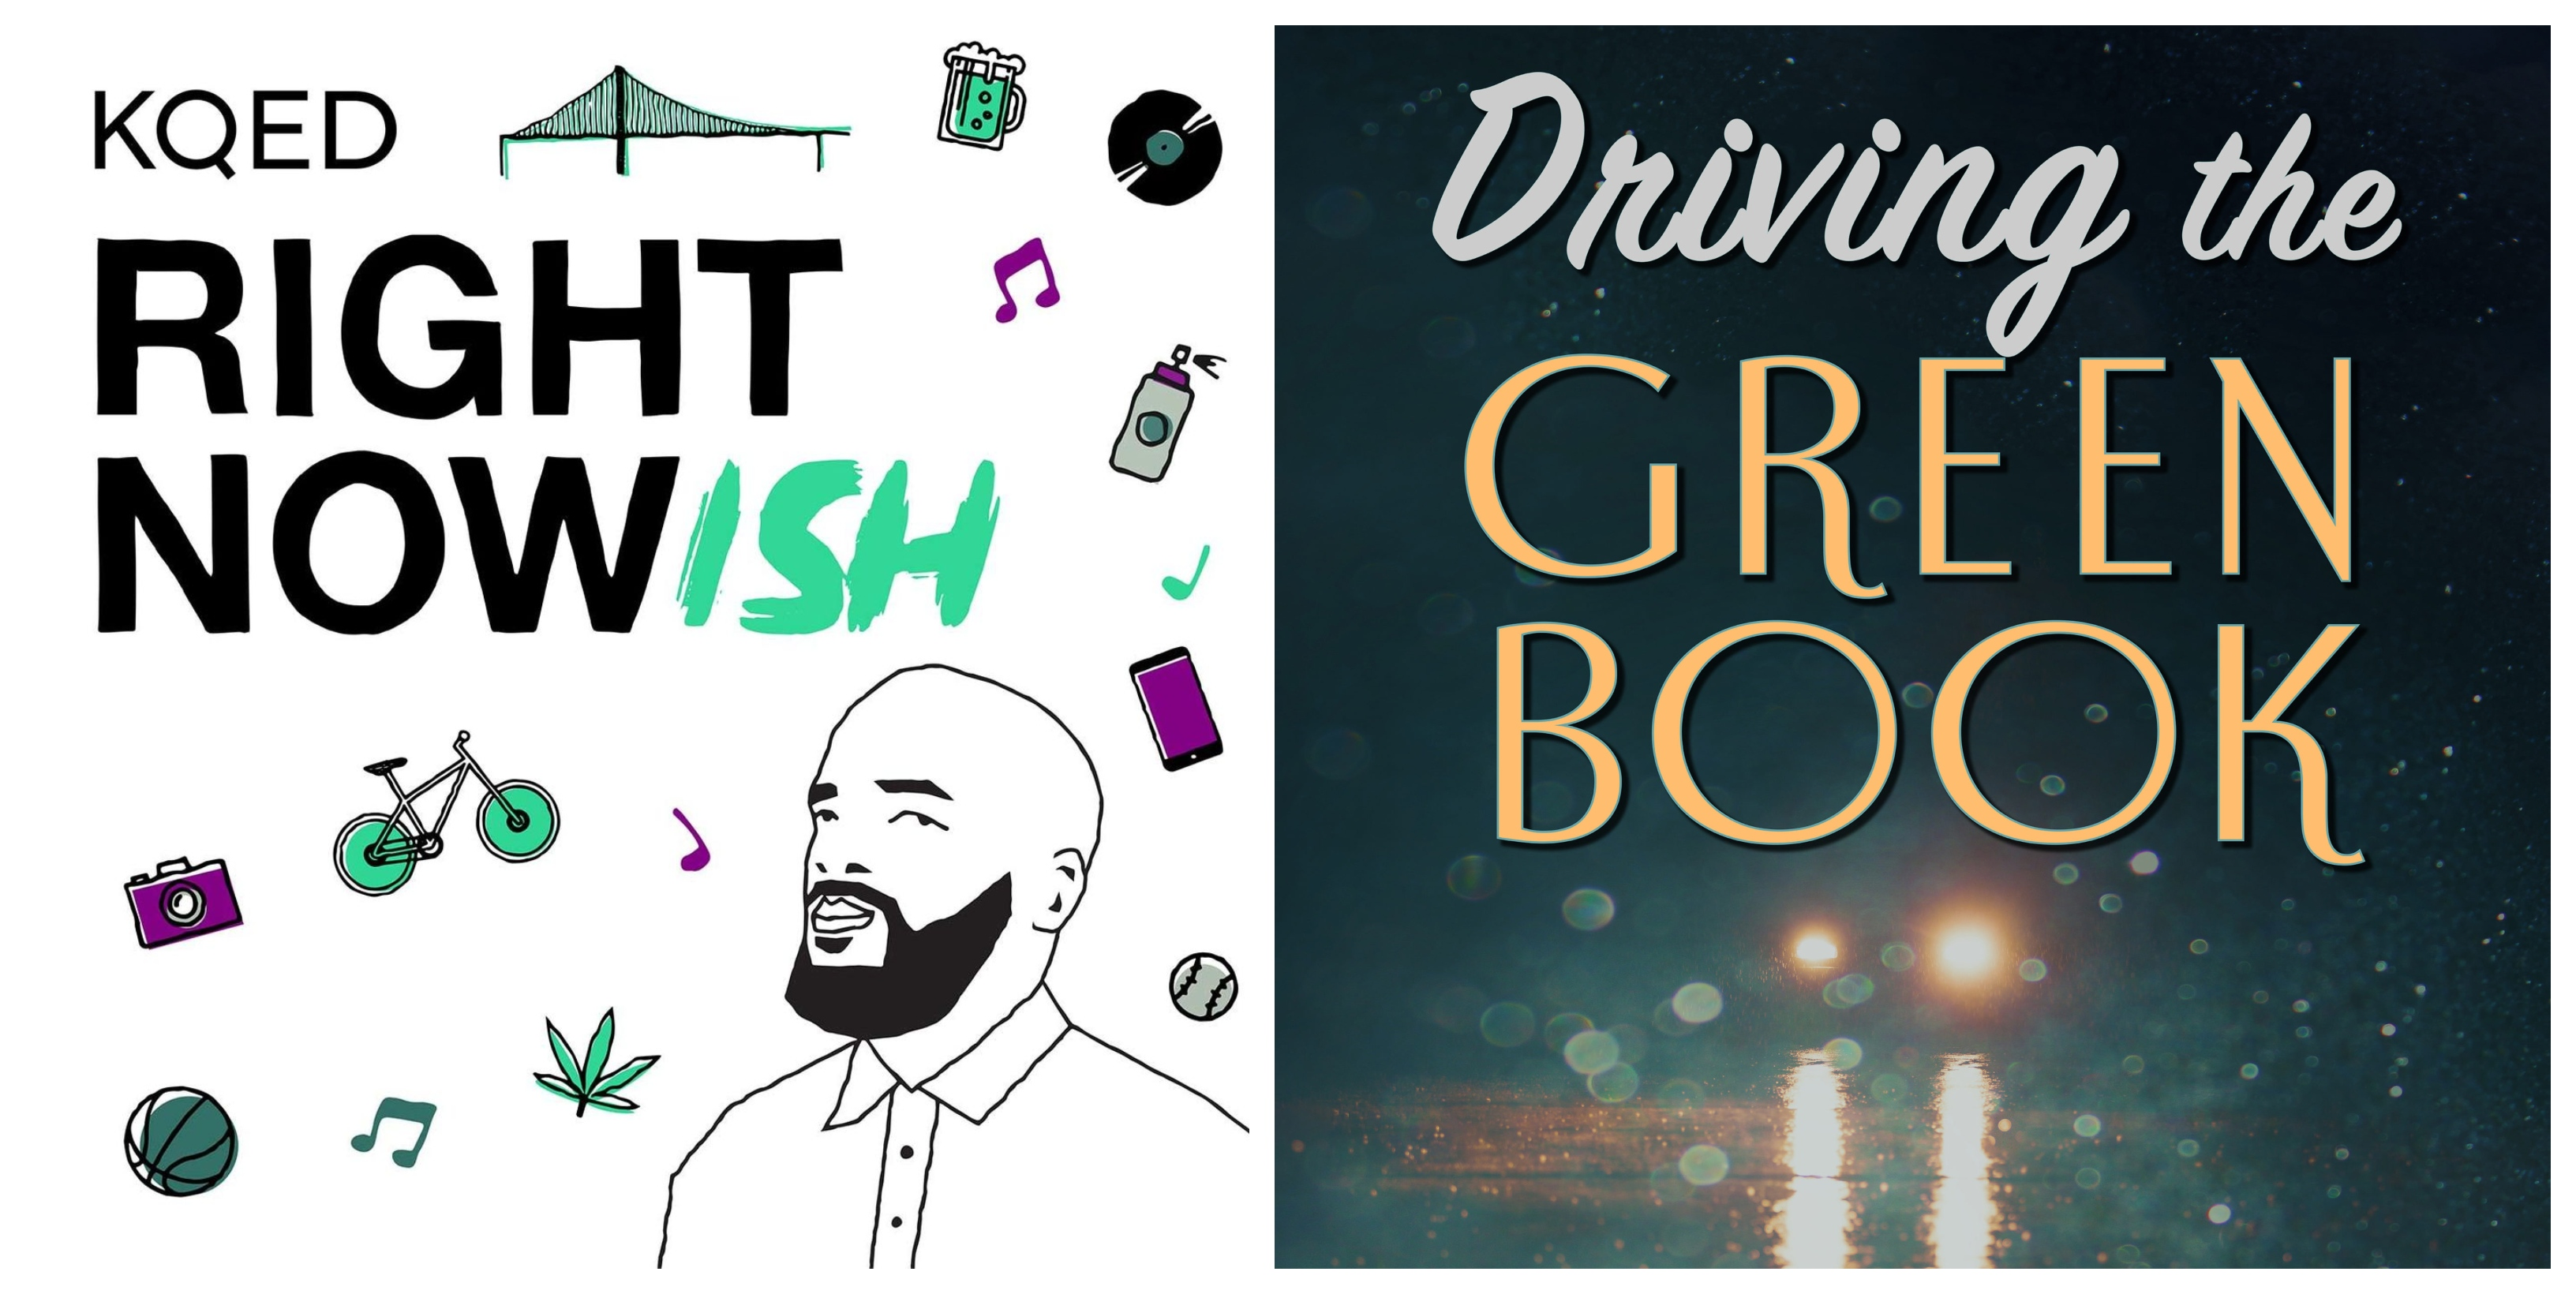 Rightnowish - Driving the Green Book